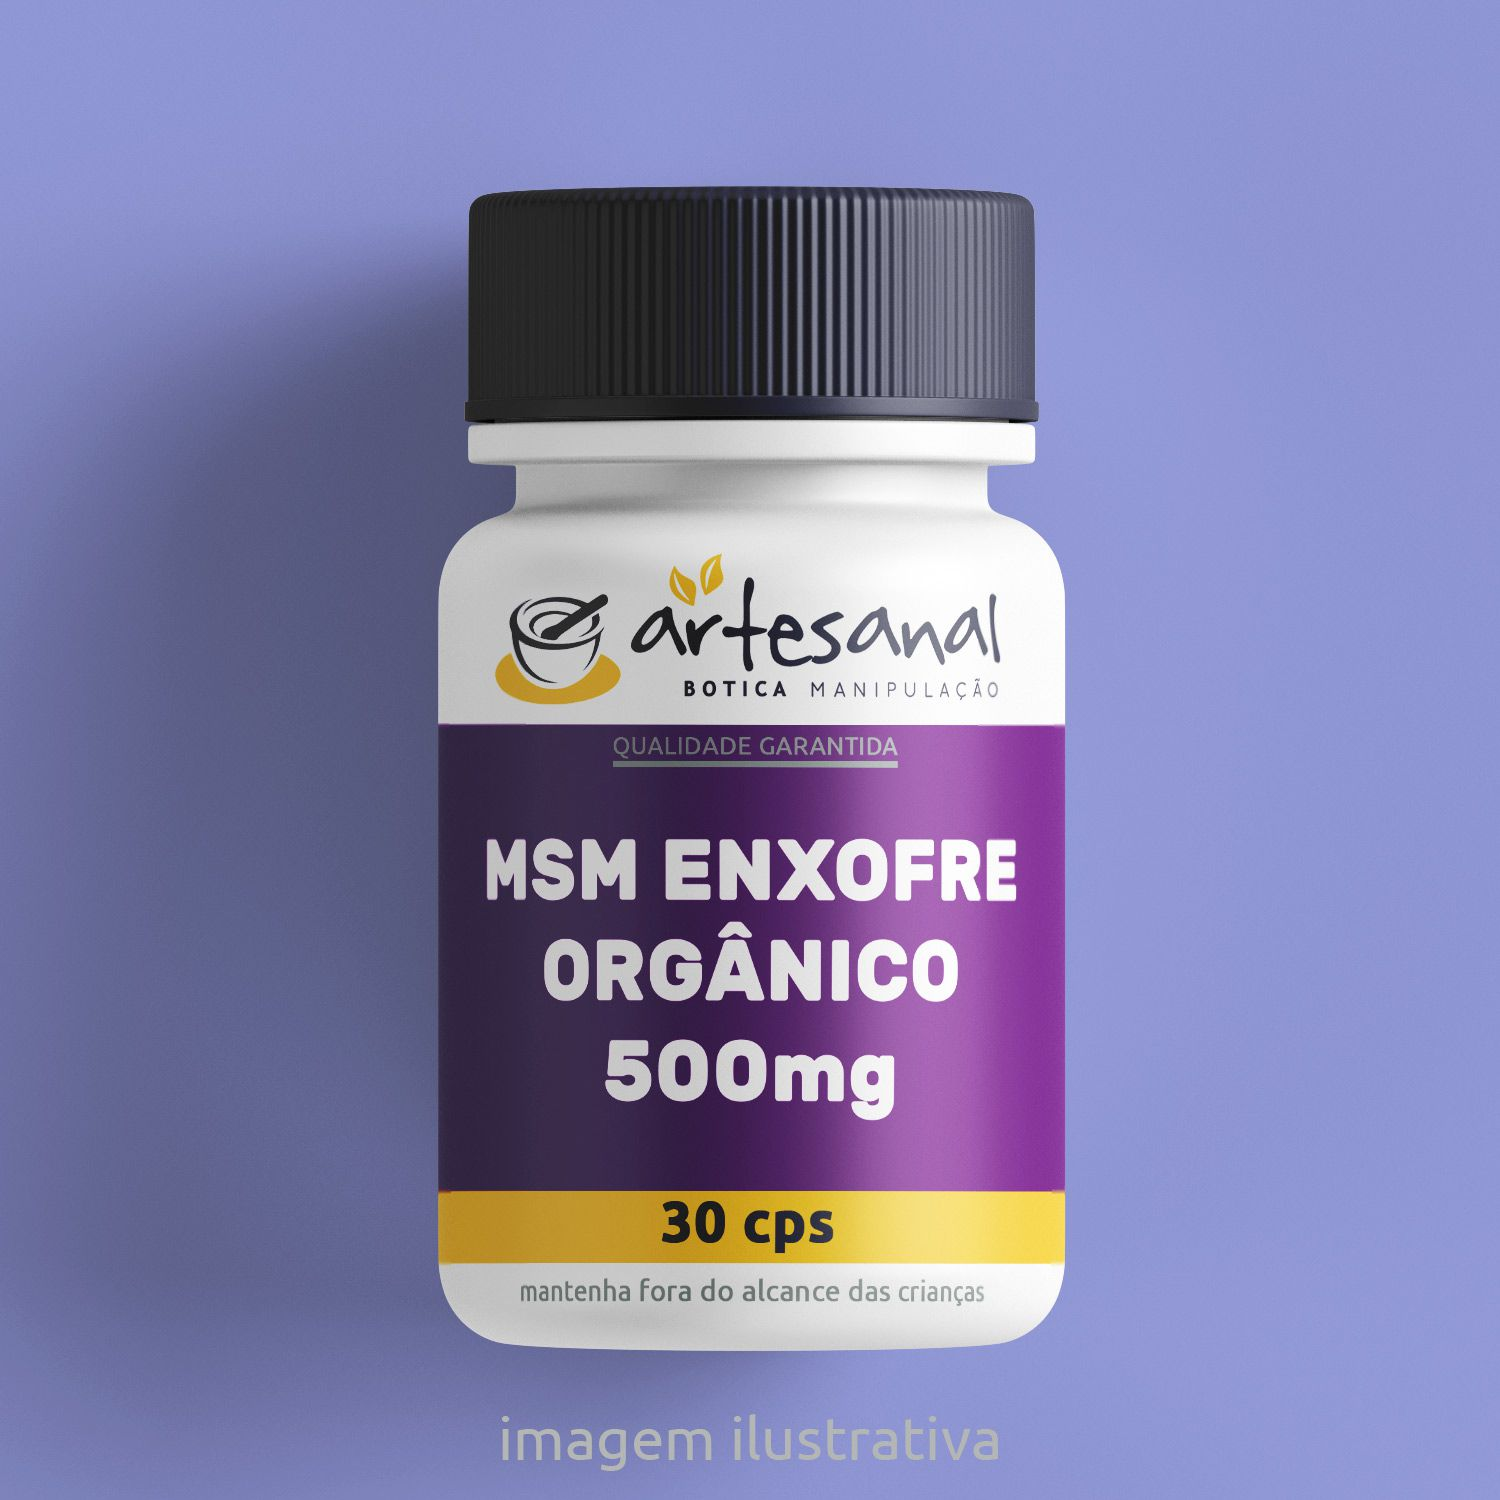 Msm Enxofre Orgânico 500mg - 30 Cps